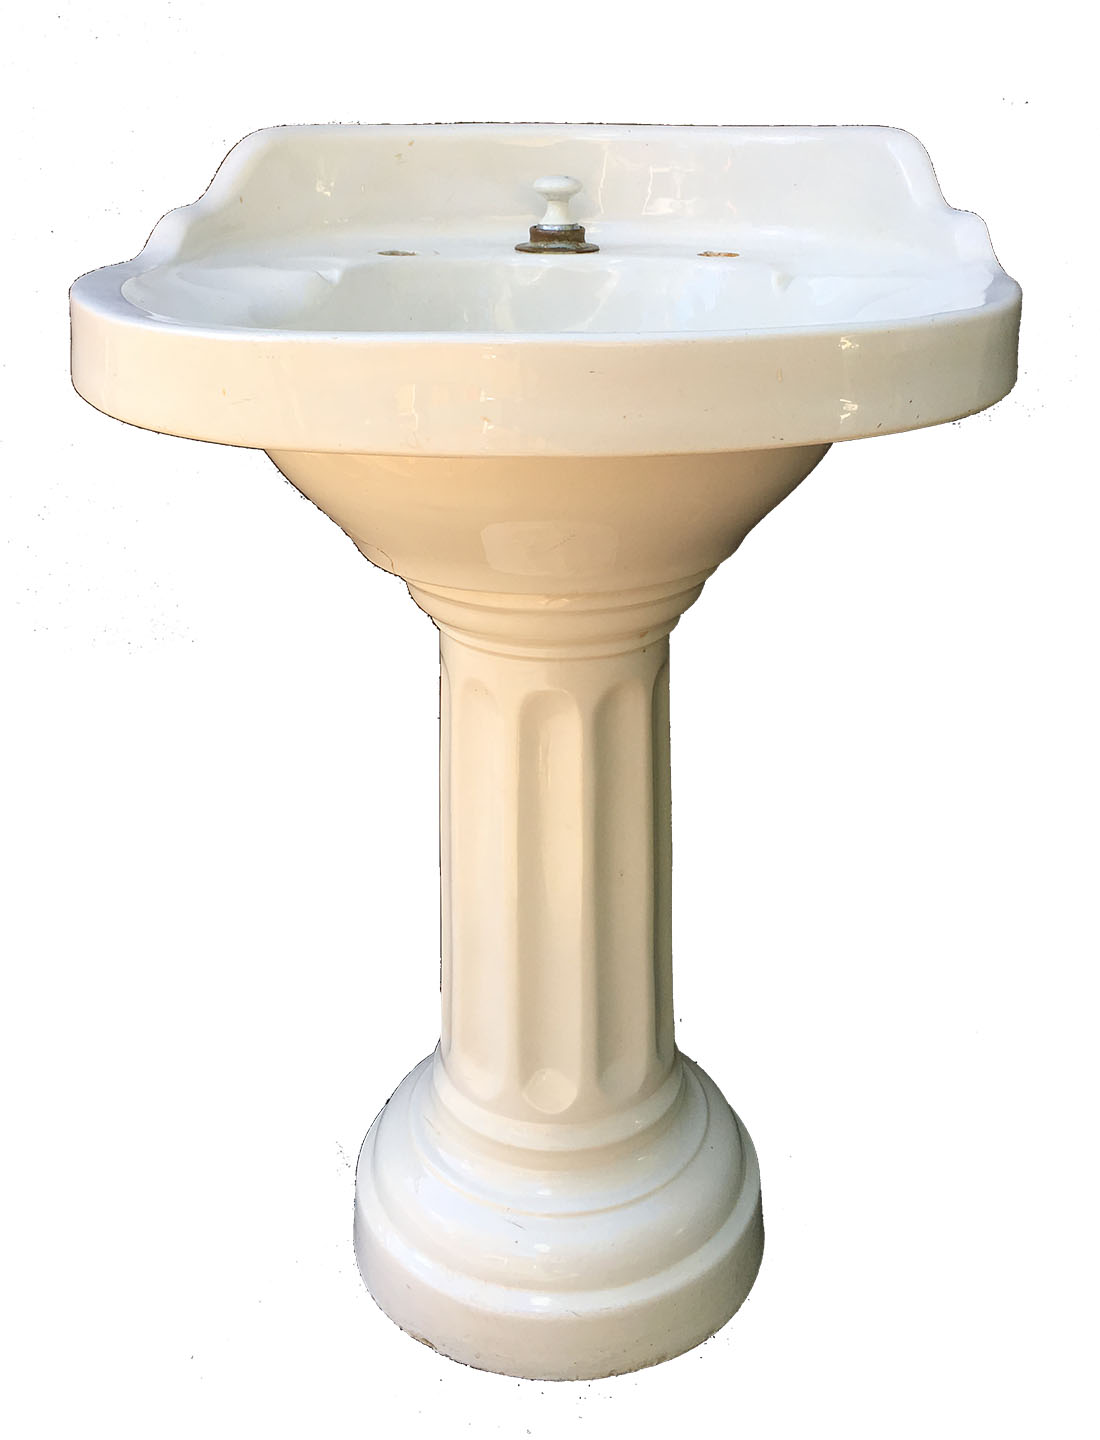 antique eljer comfort vitreous china round pedestal sink with fluted base circa 1918